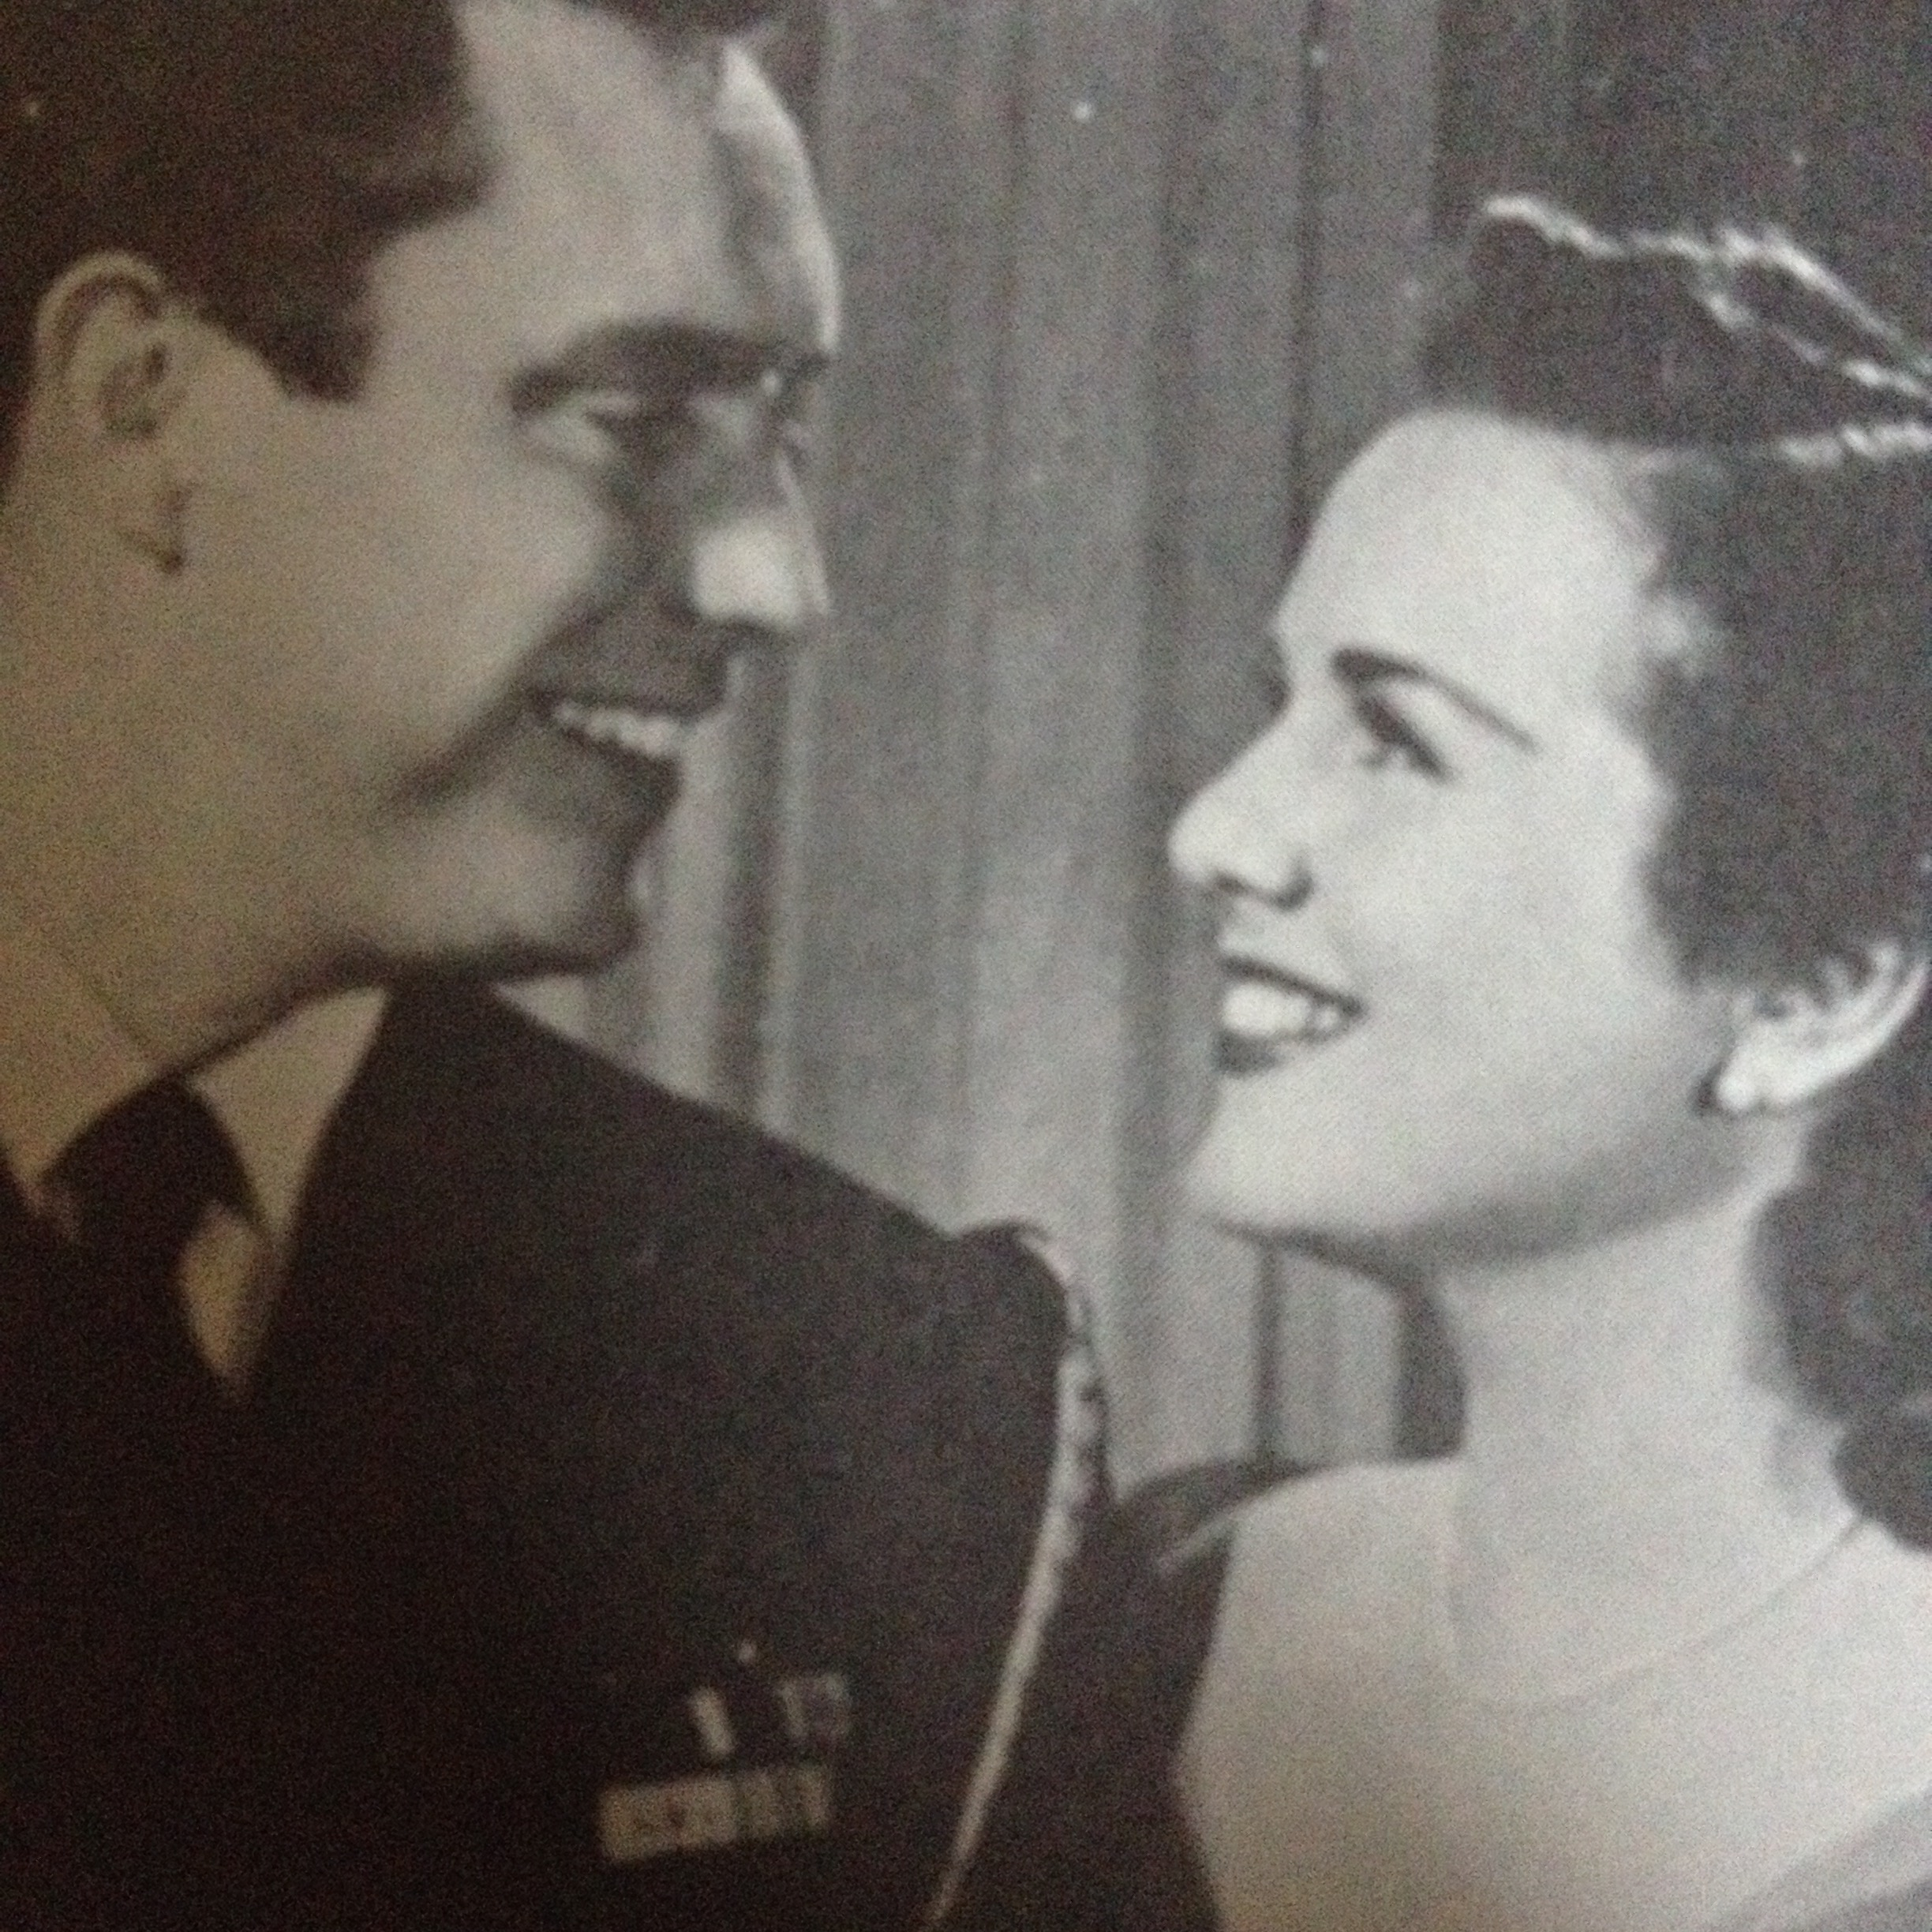 Deanna Durbin and Edmond O'Brien in For the Love of Mary (1948)